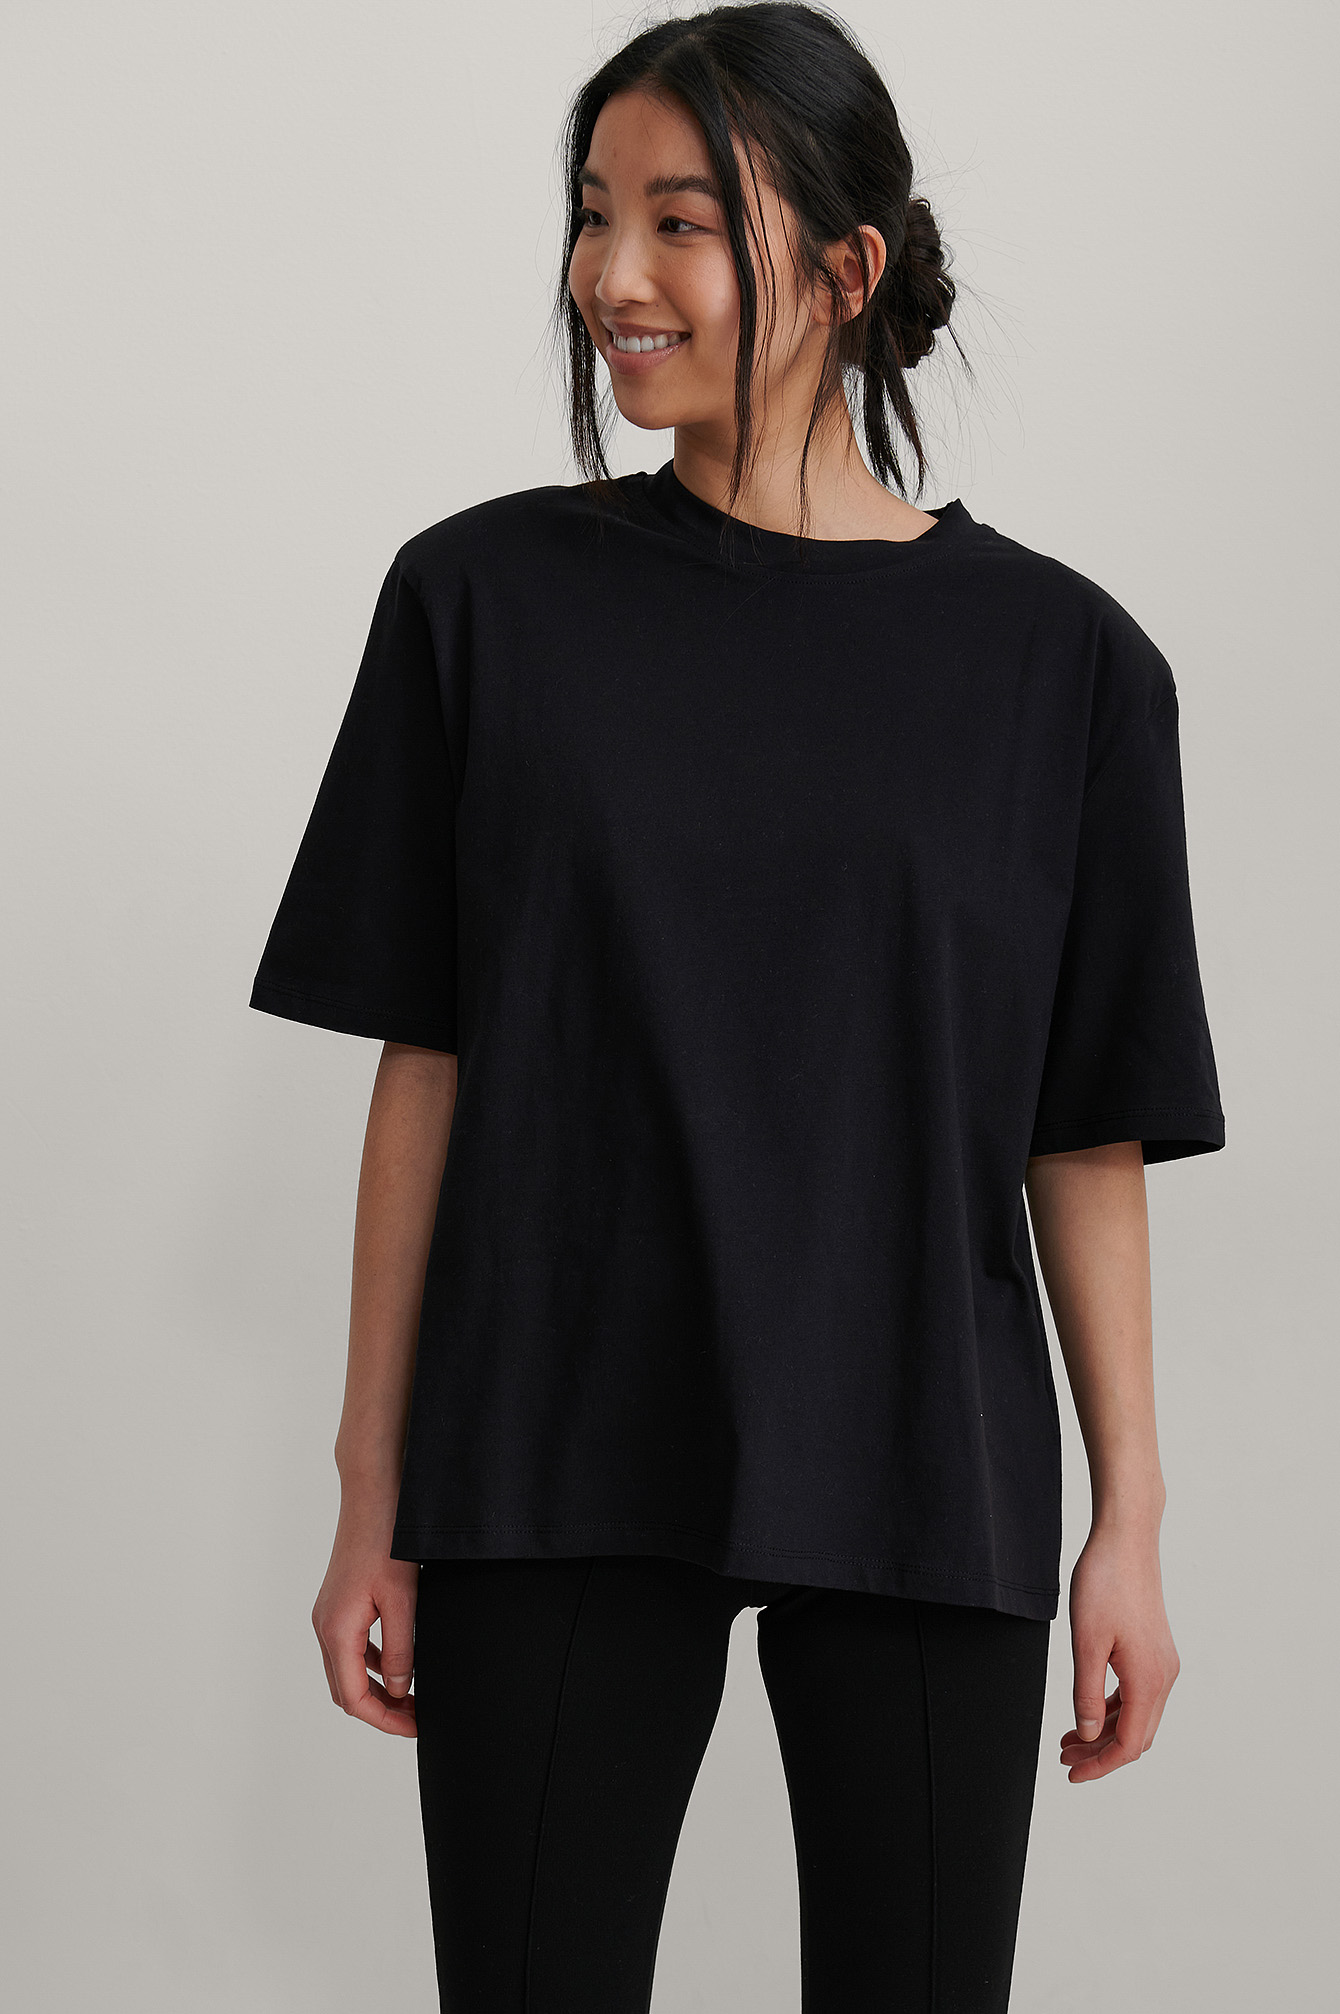 Black Organic Shoulder Pad Boxy Tee